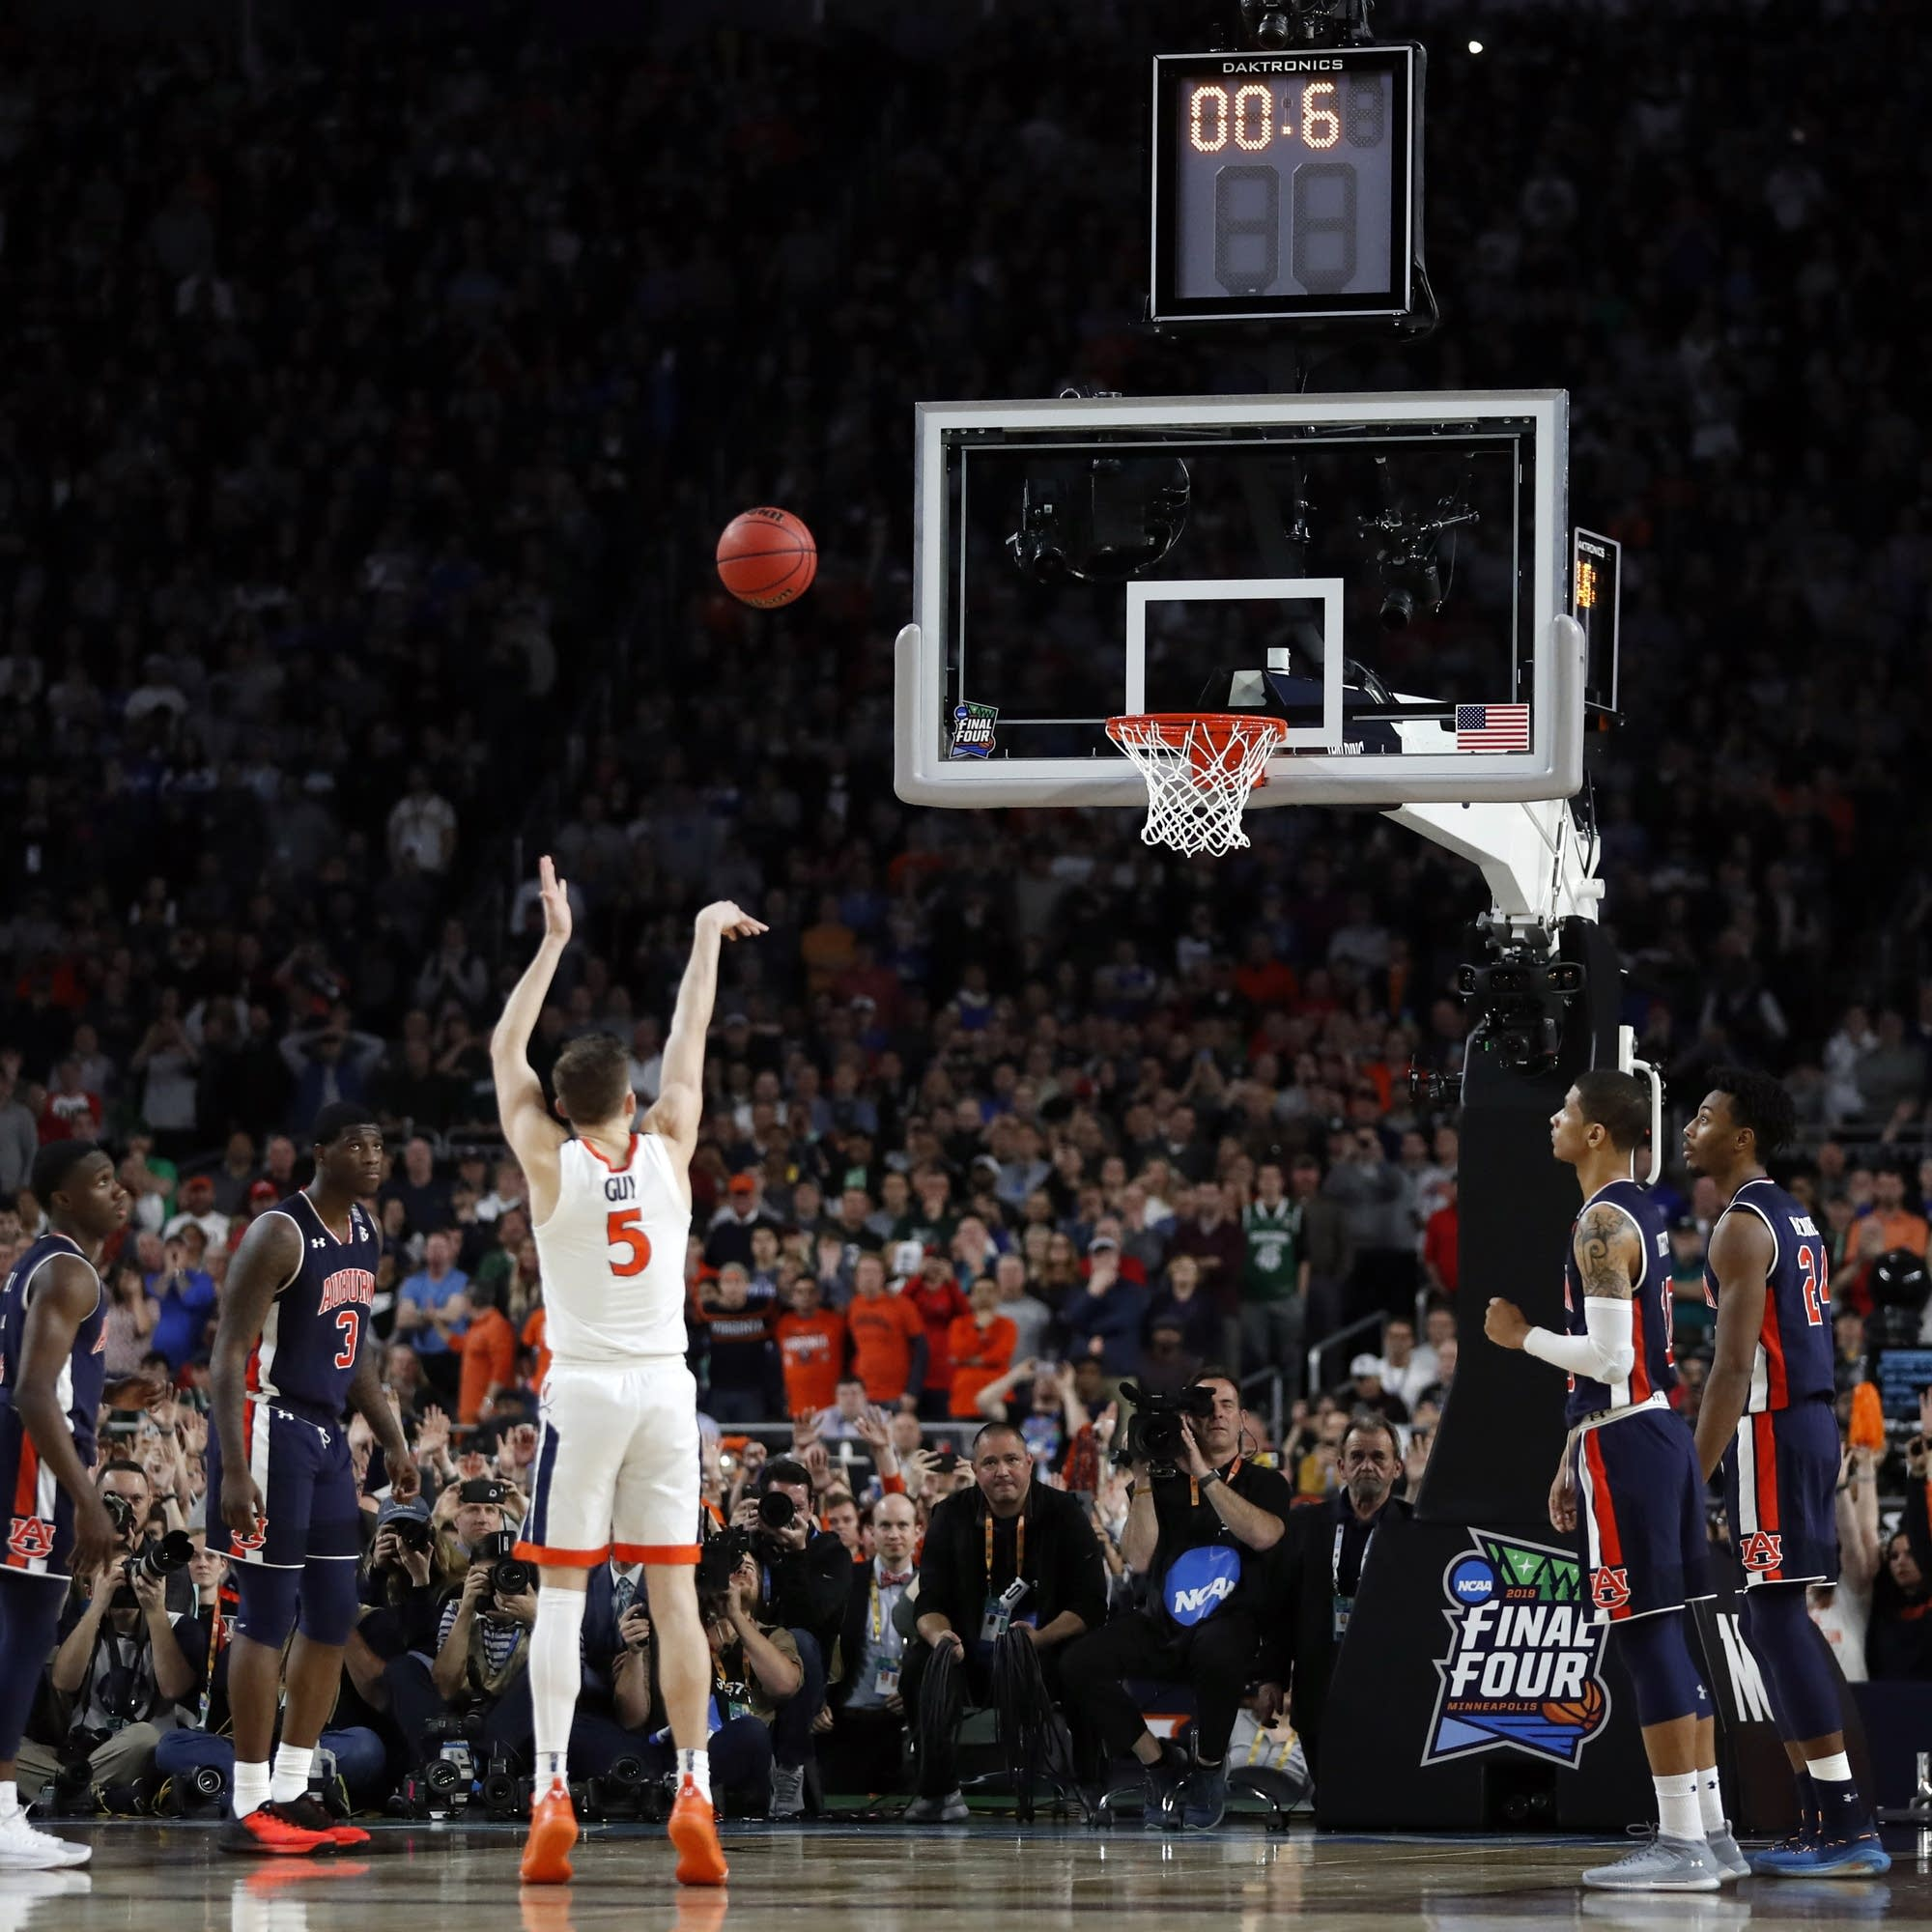 Virginia's Kyle Guy shoots the last free throw